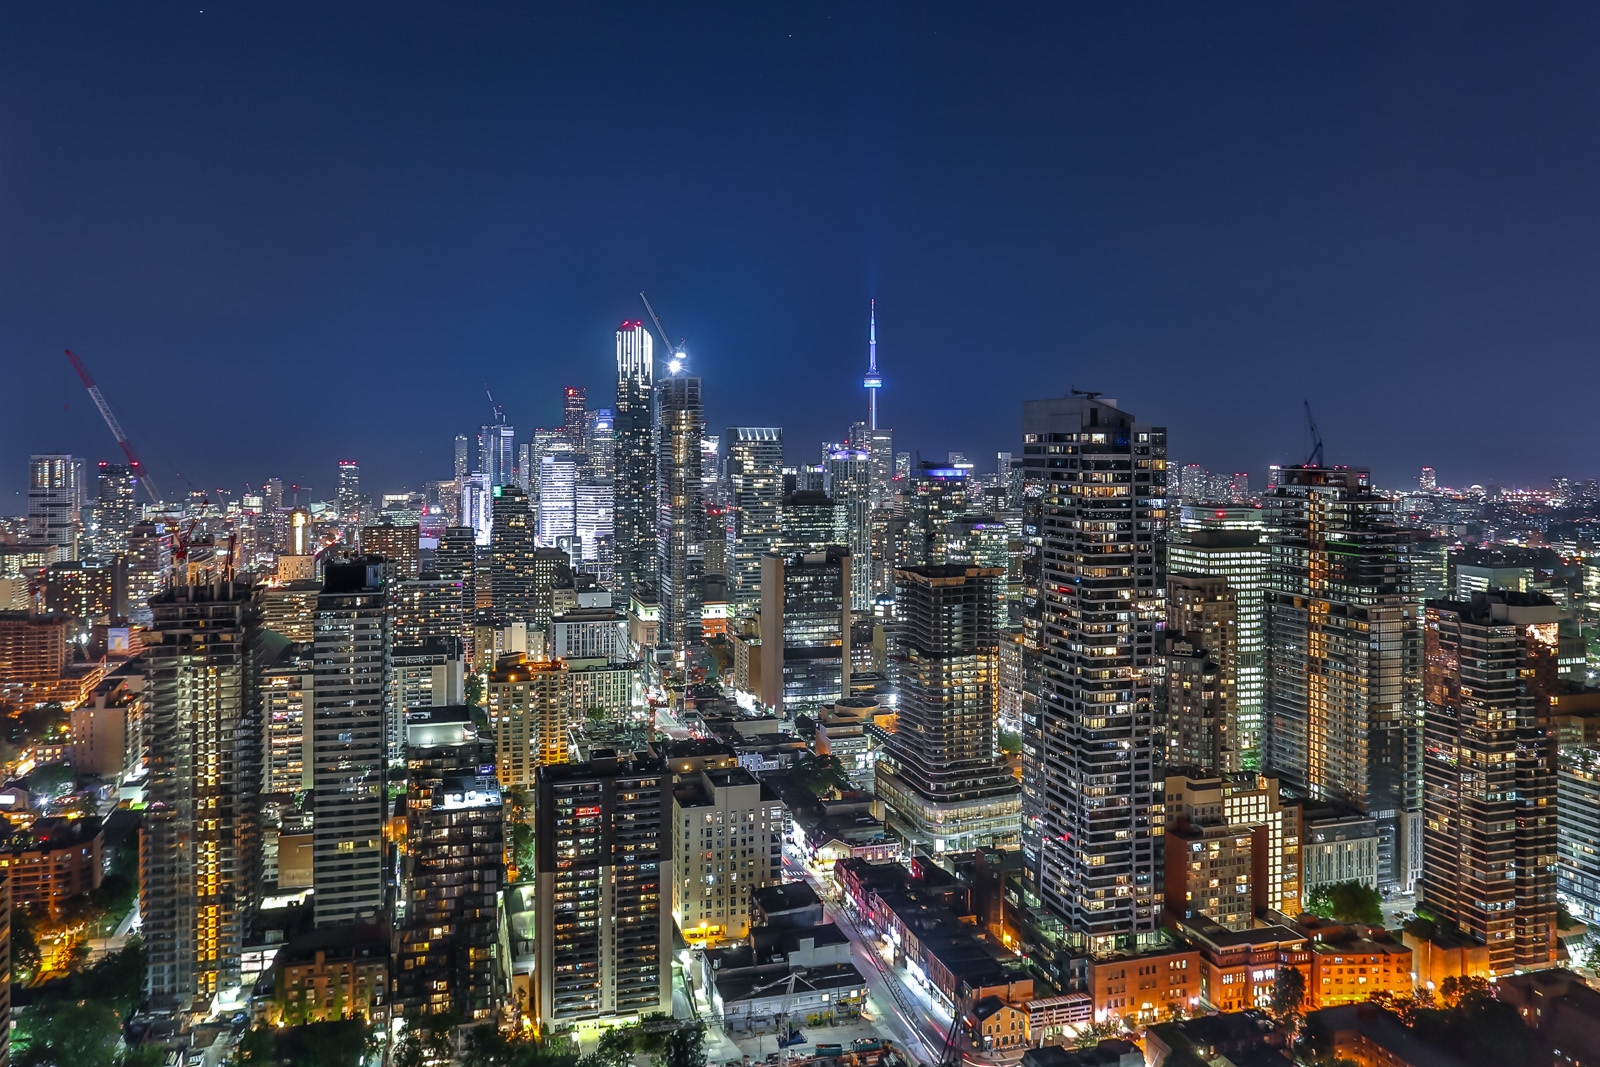 Toronto skyline at night from 33 Charles St E penthouse of Casa Condos with CN Tower in distance.